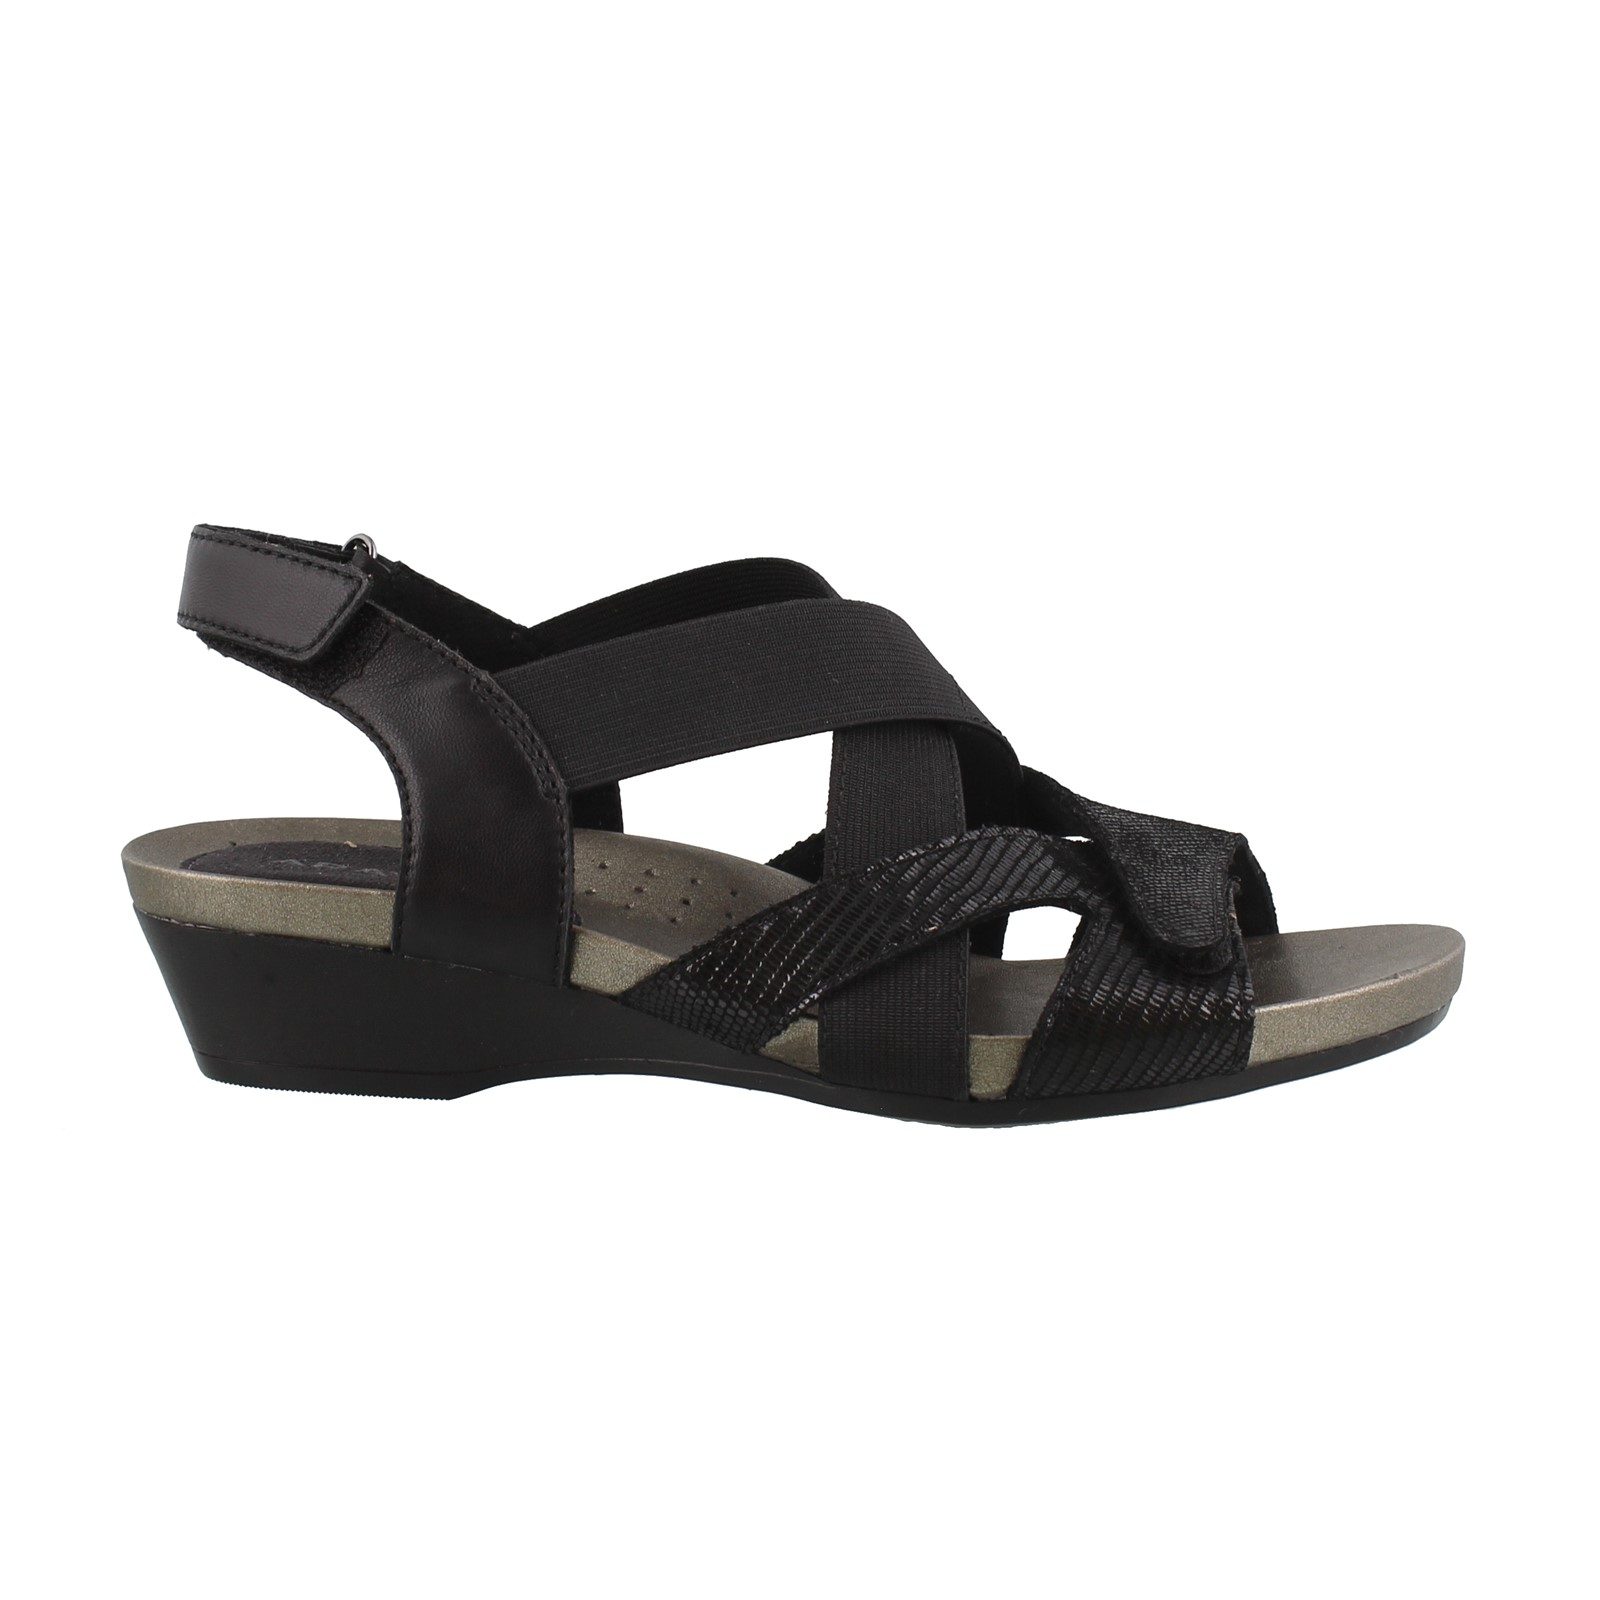 Women's Aravon, Standon X Strap Sandals